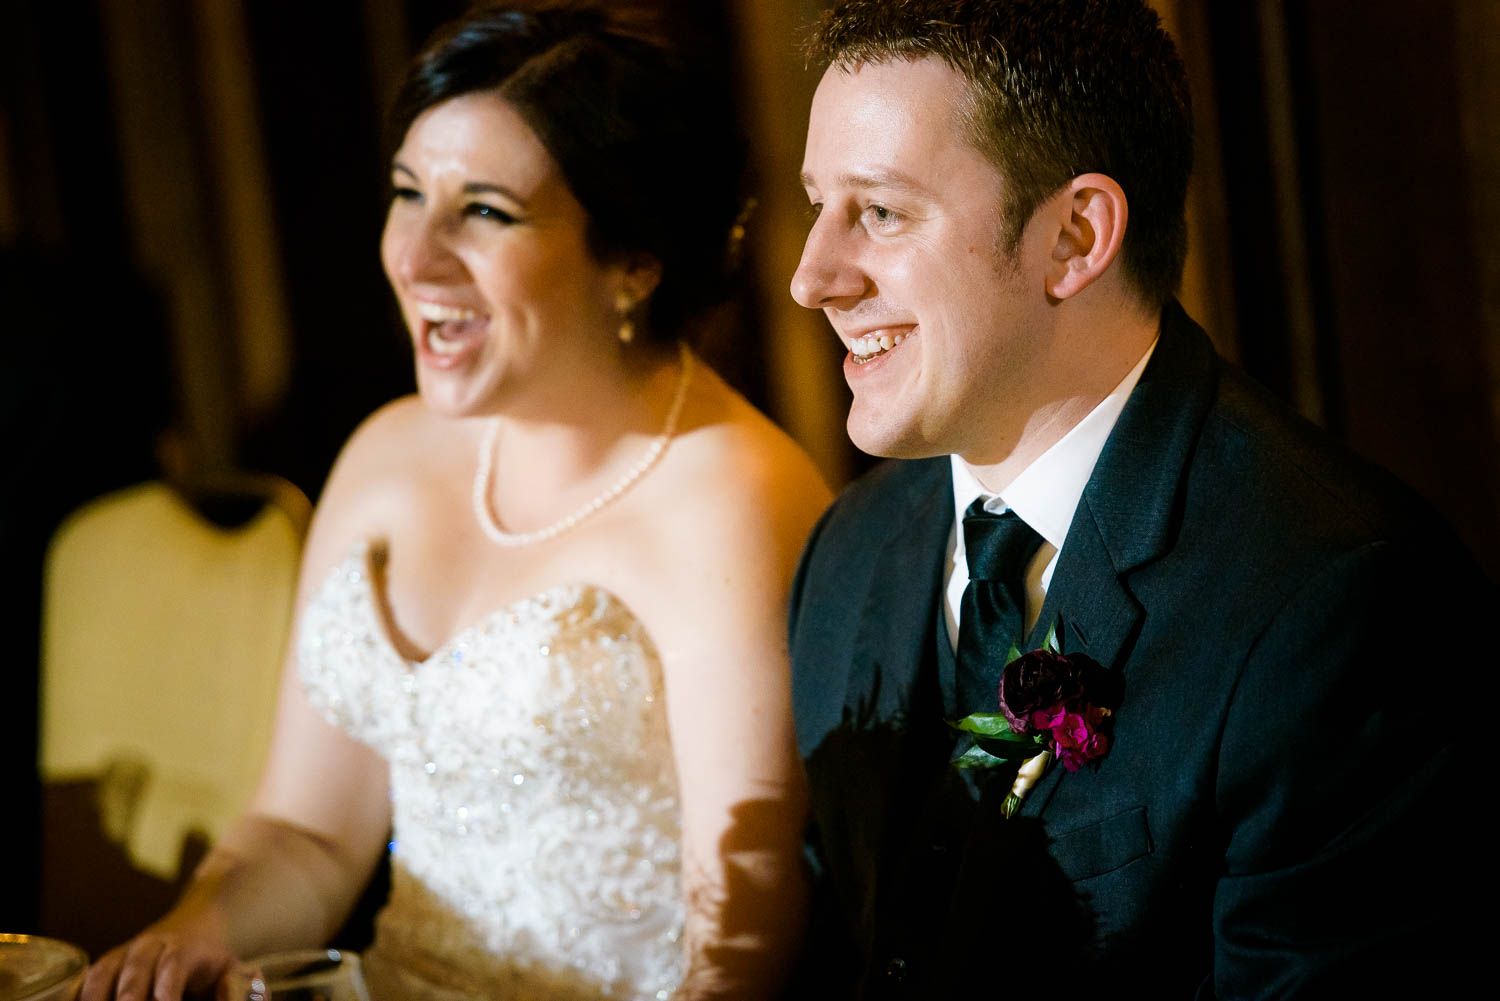 Couple laughs during their wedding party speeches during a University Club of Chicago wedding.